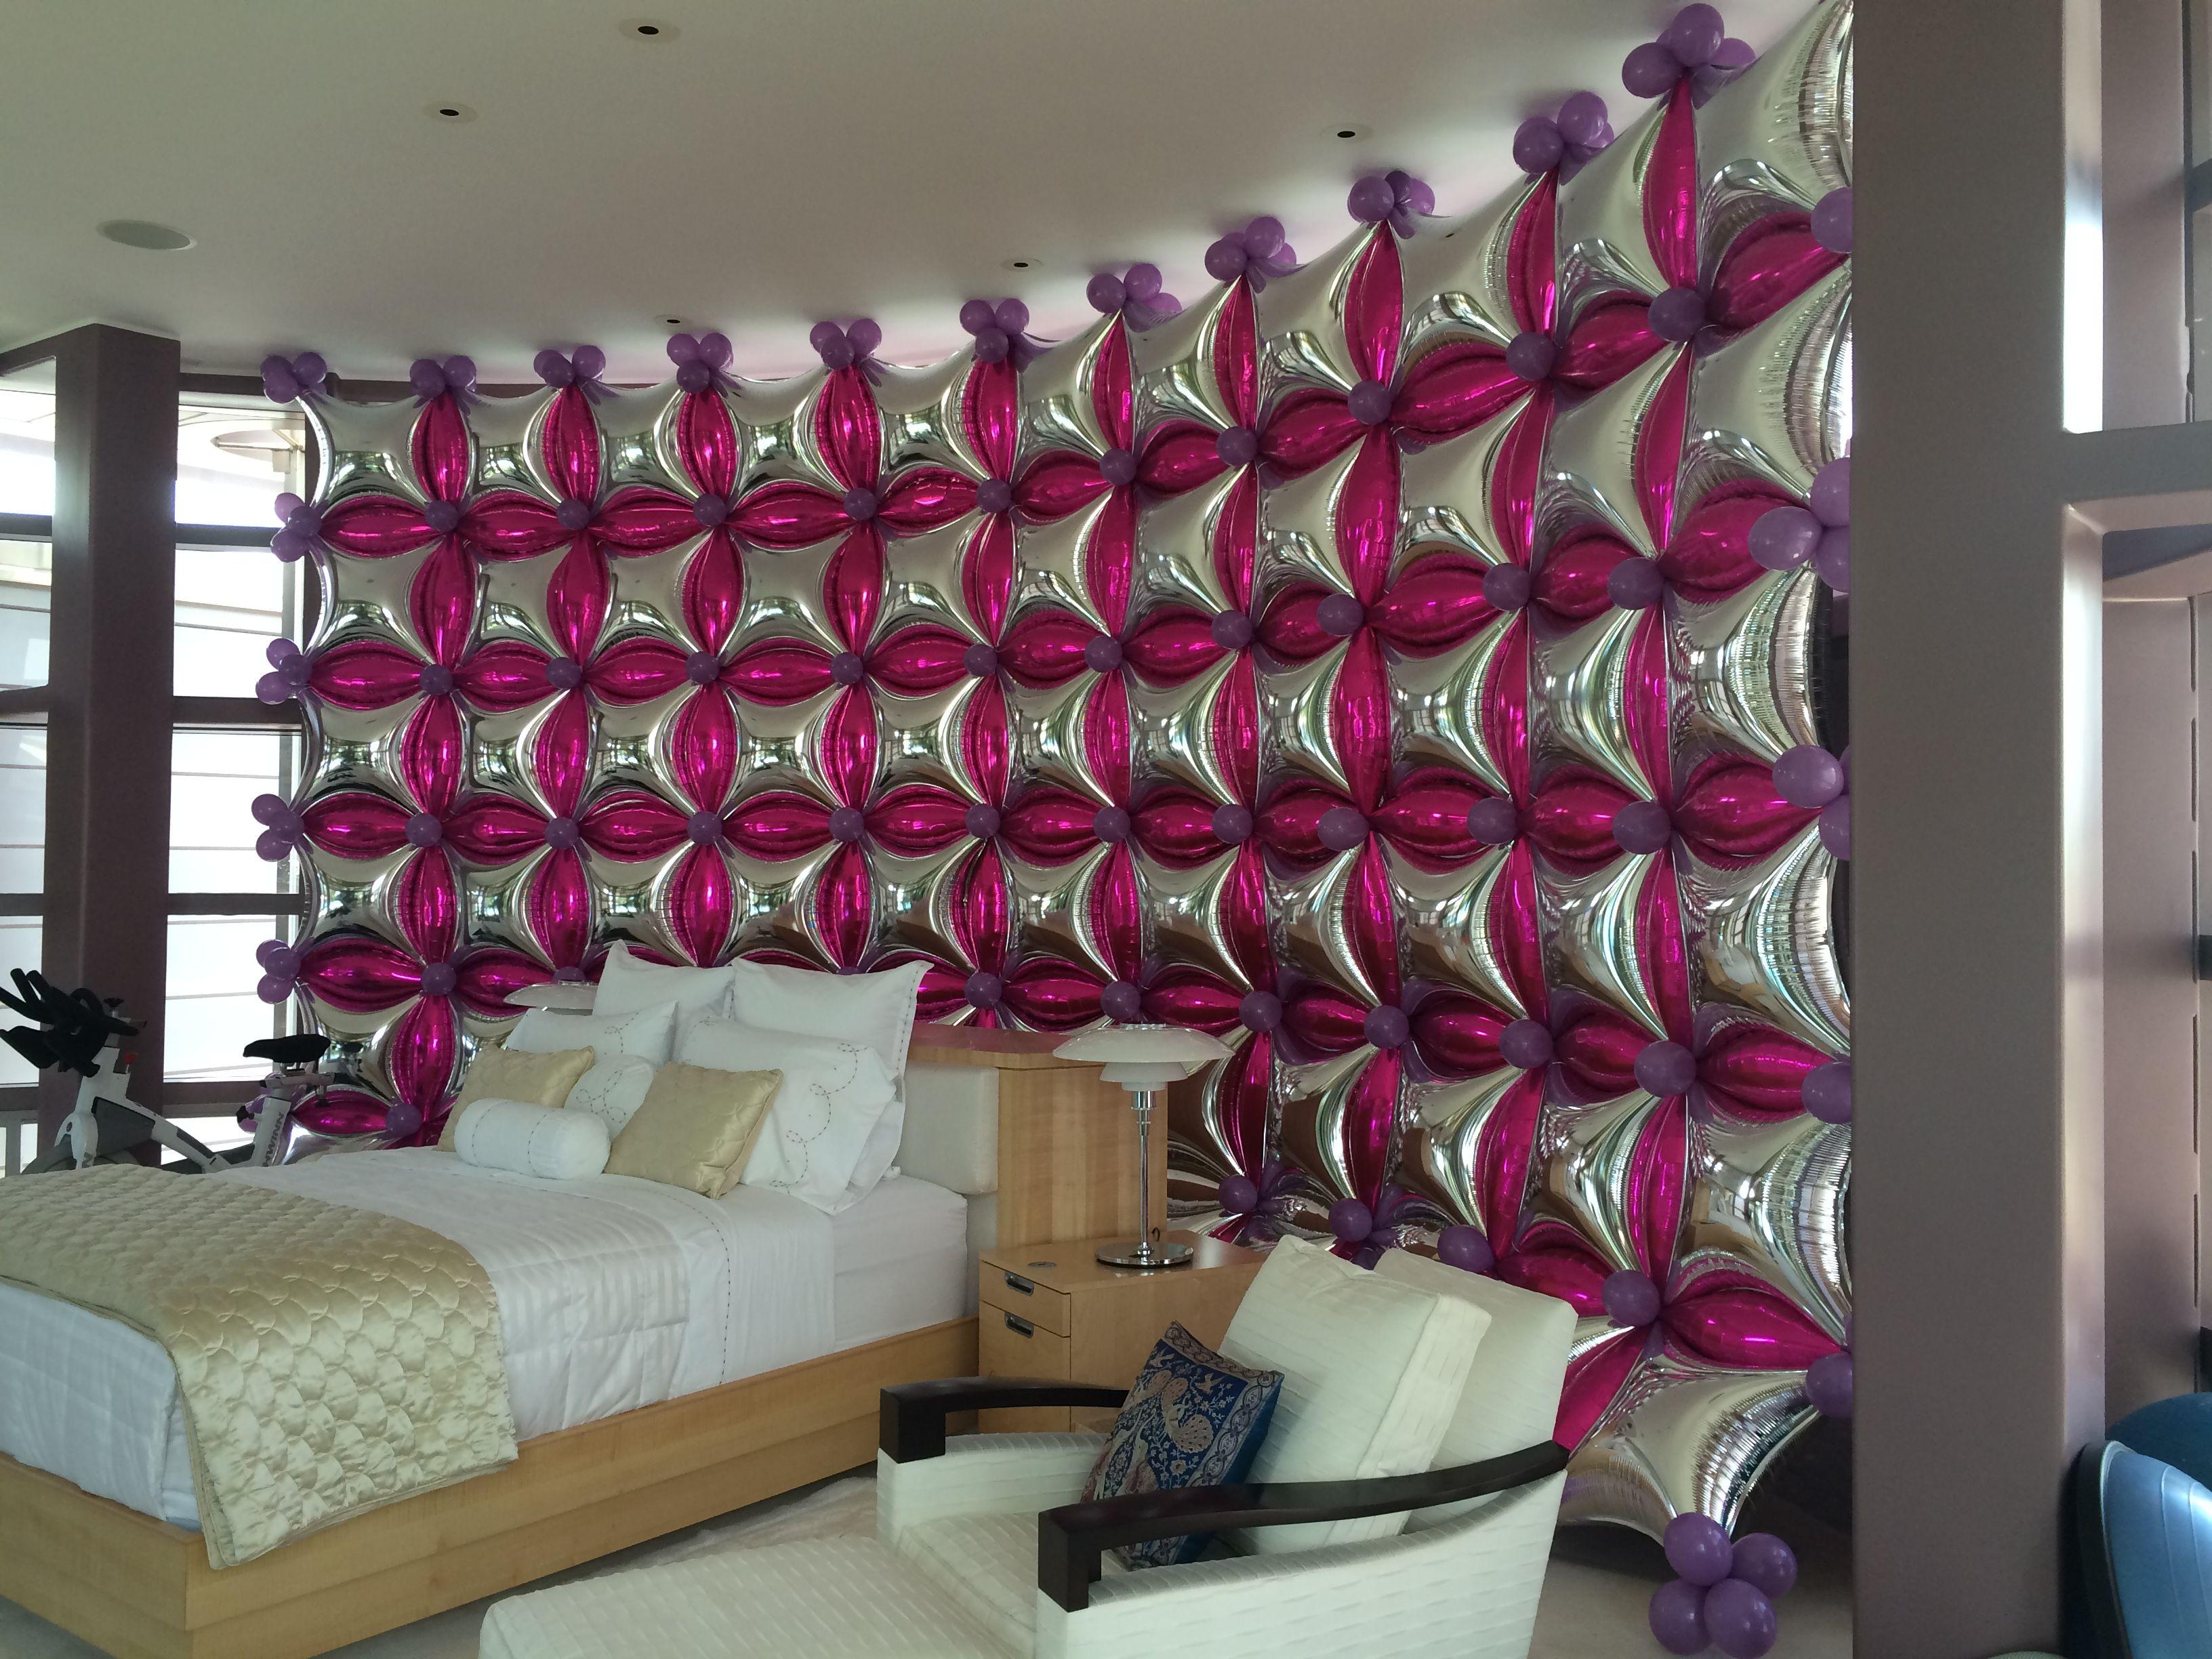 Balloon Wall Silver And Hot Pink Event Deror Of Wall